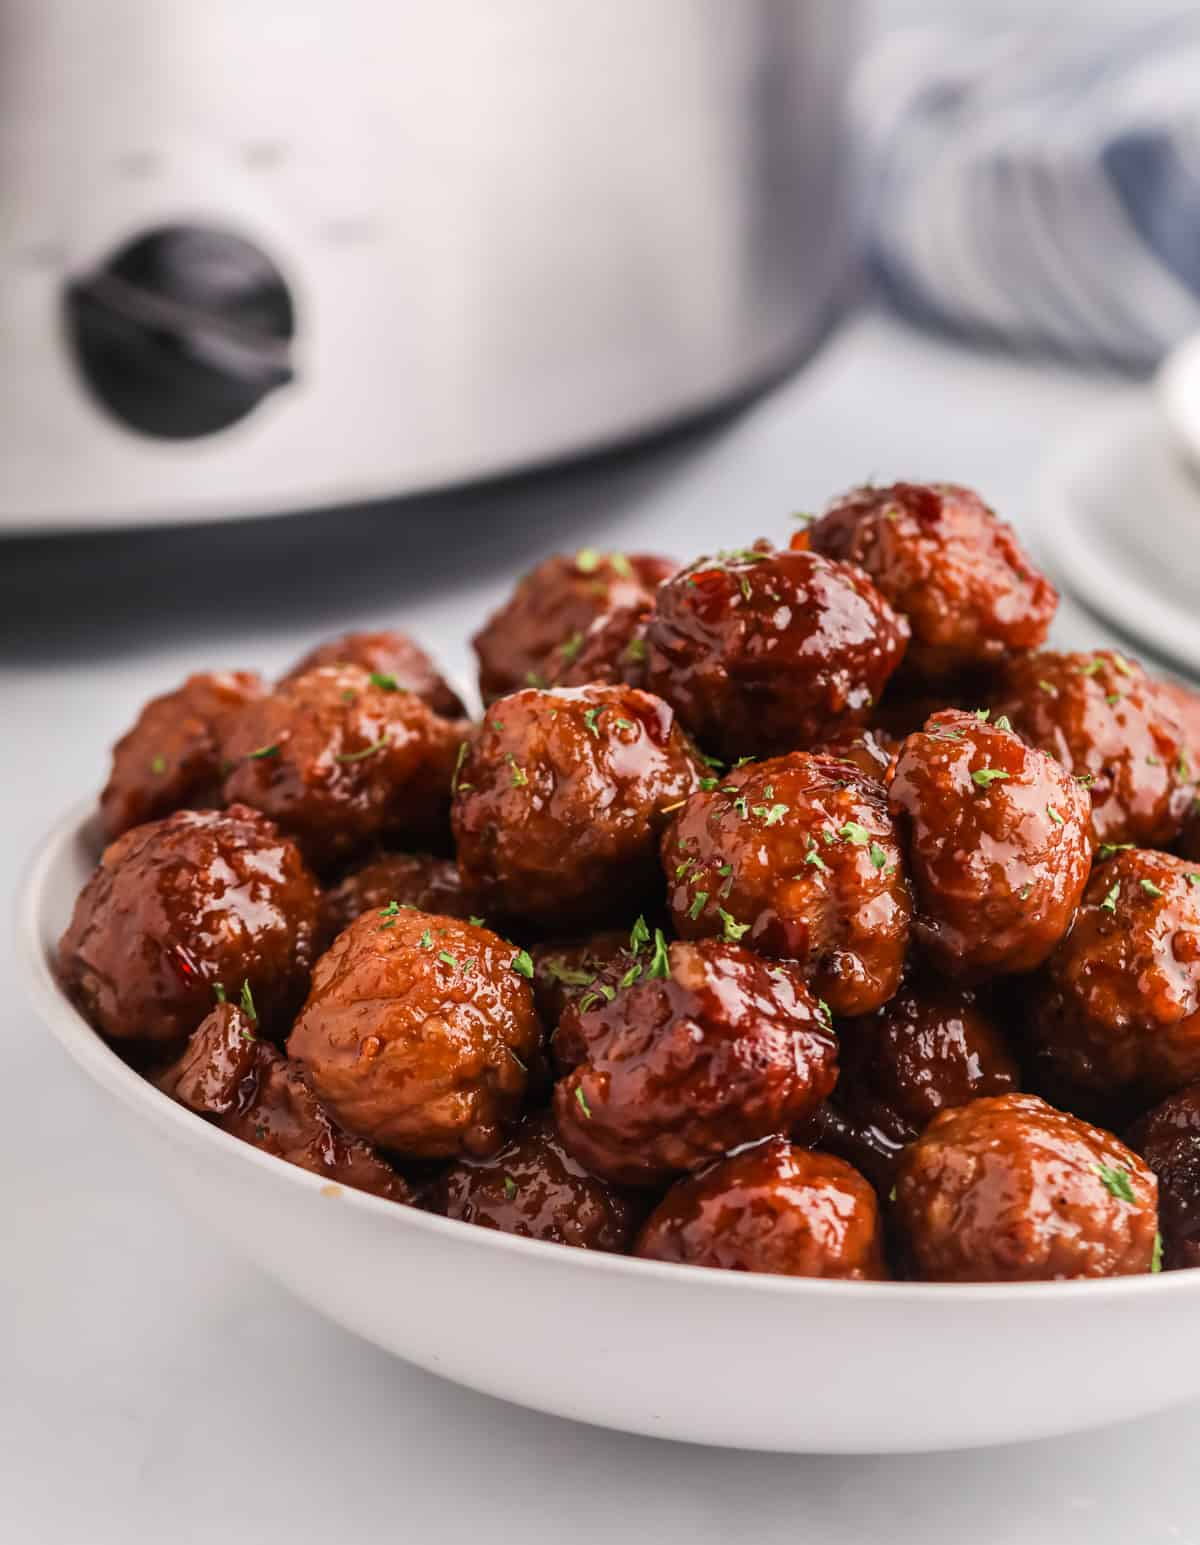 Meatballs stacked in bowl with diced parsley